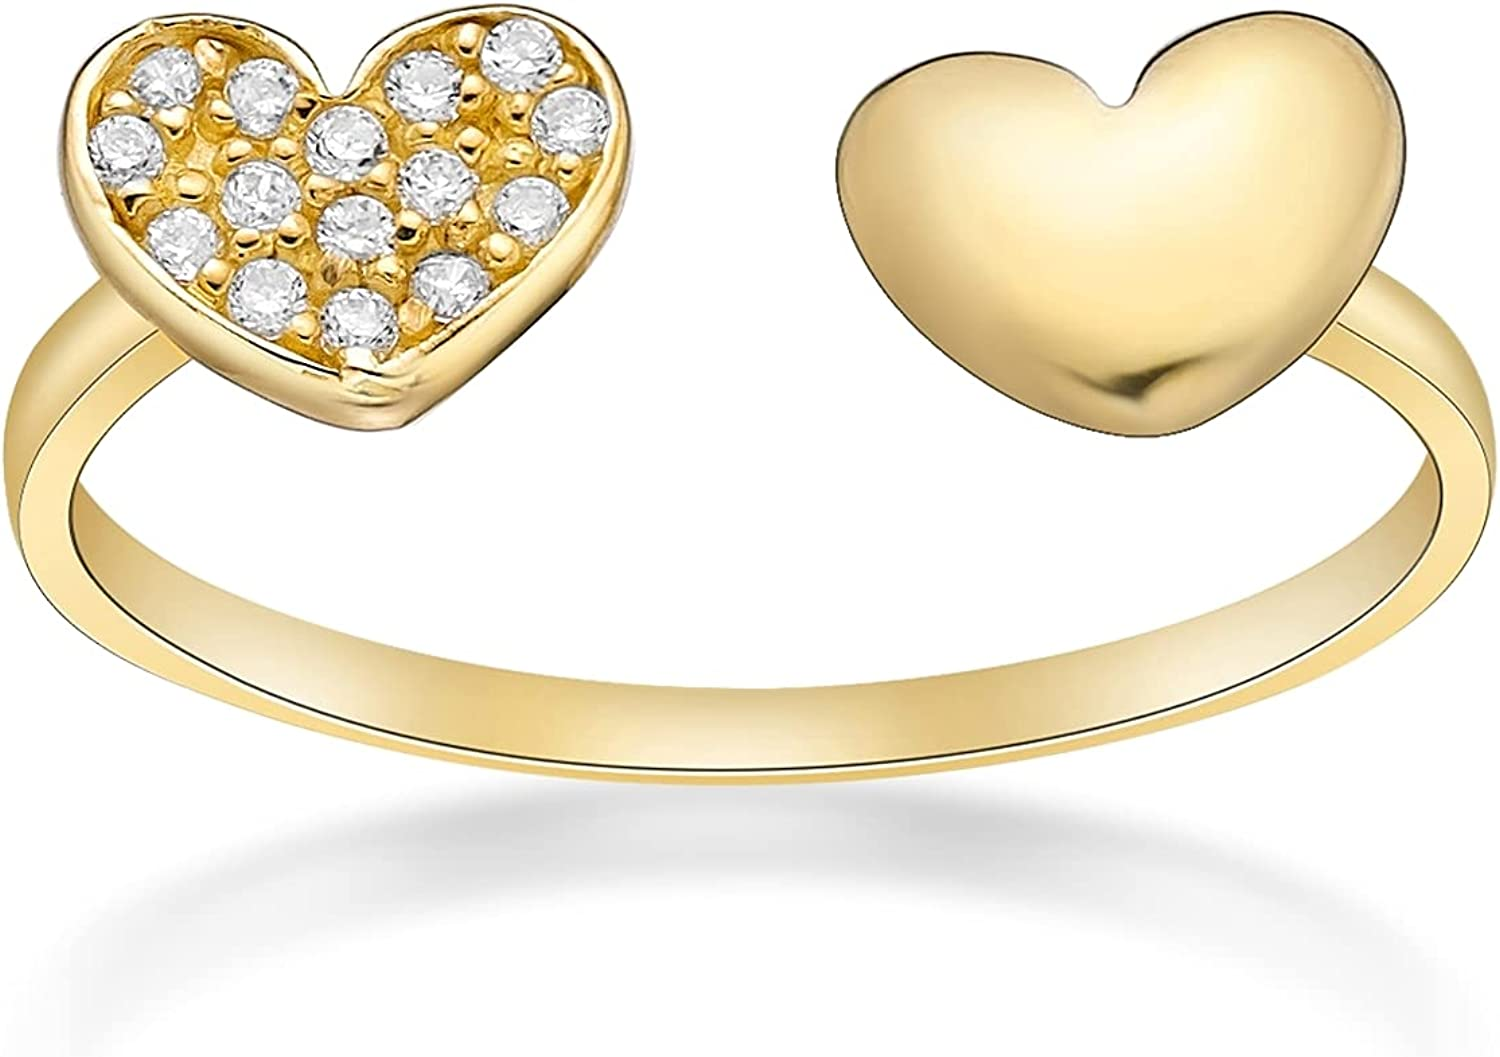 Cubic Zirconia Adjustable Double Heart Toe Ring in 10k Yellow Gold 5 MM Wide by Lavari Jewelers